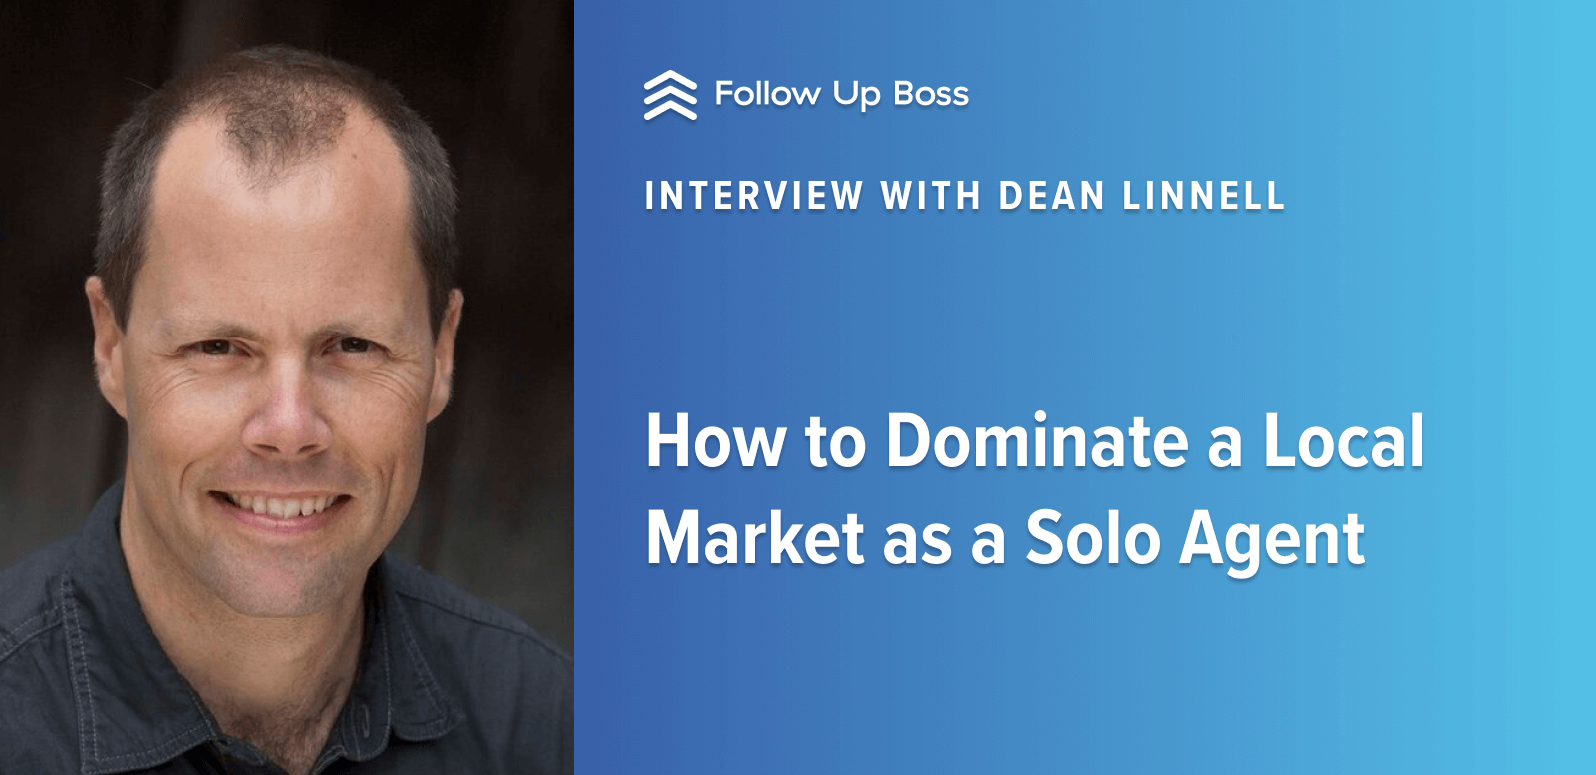 Don't Grow Teams, Grow Your Business: How to Dominate a Local Market As a Solo Agent—Interview with Dean Linnell